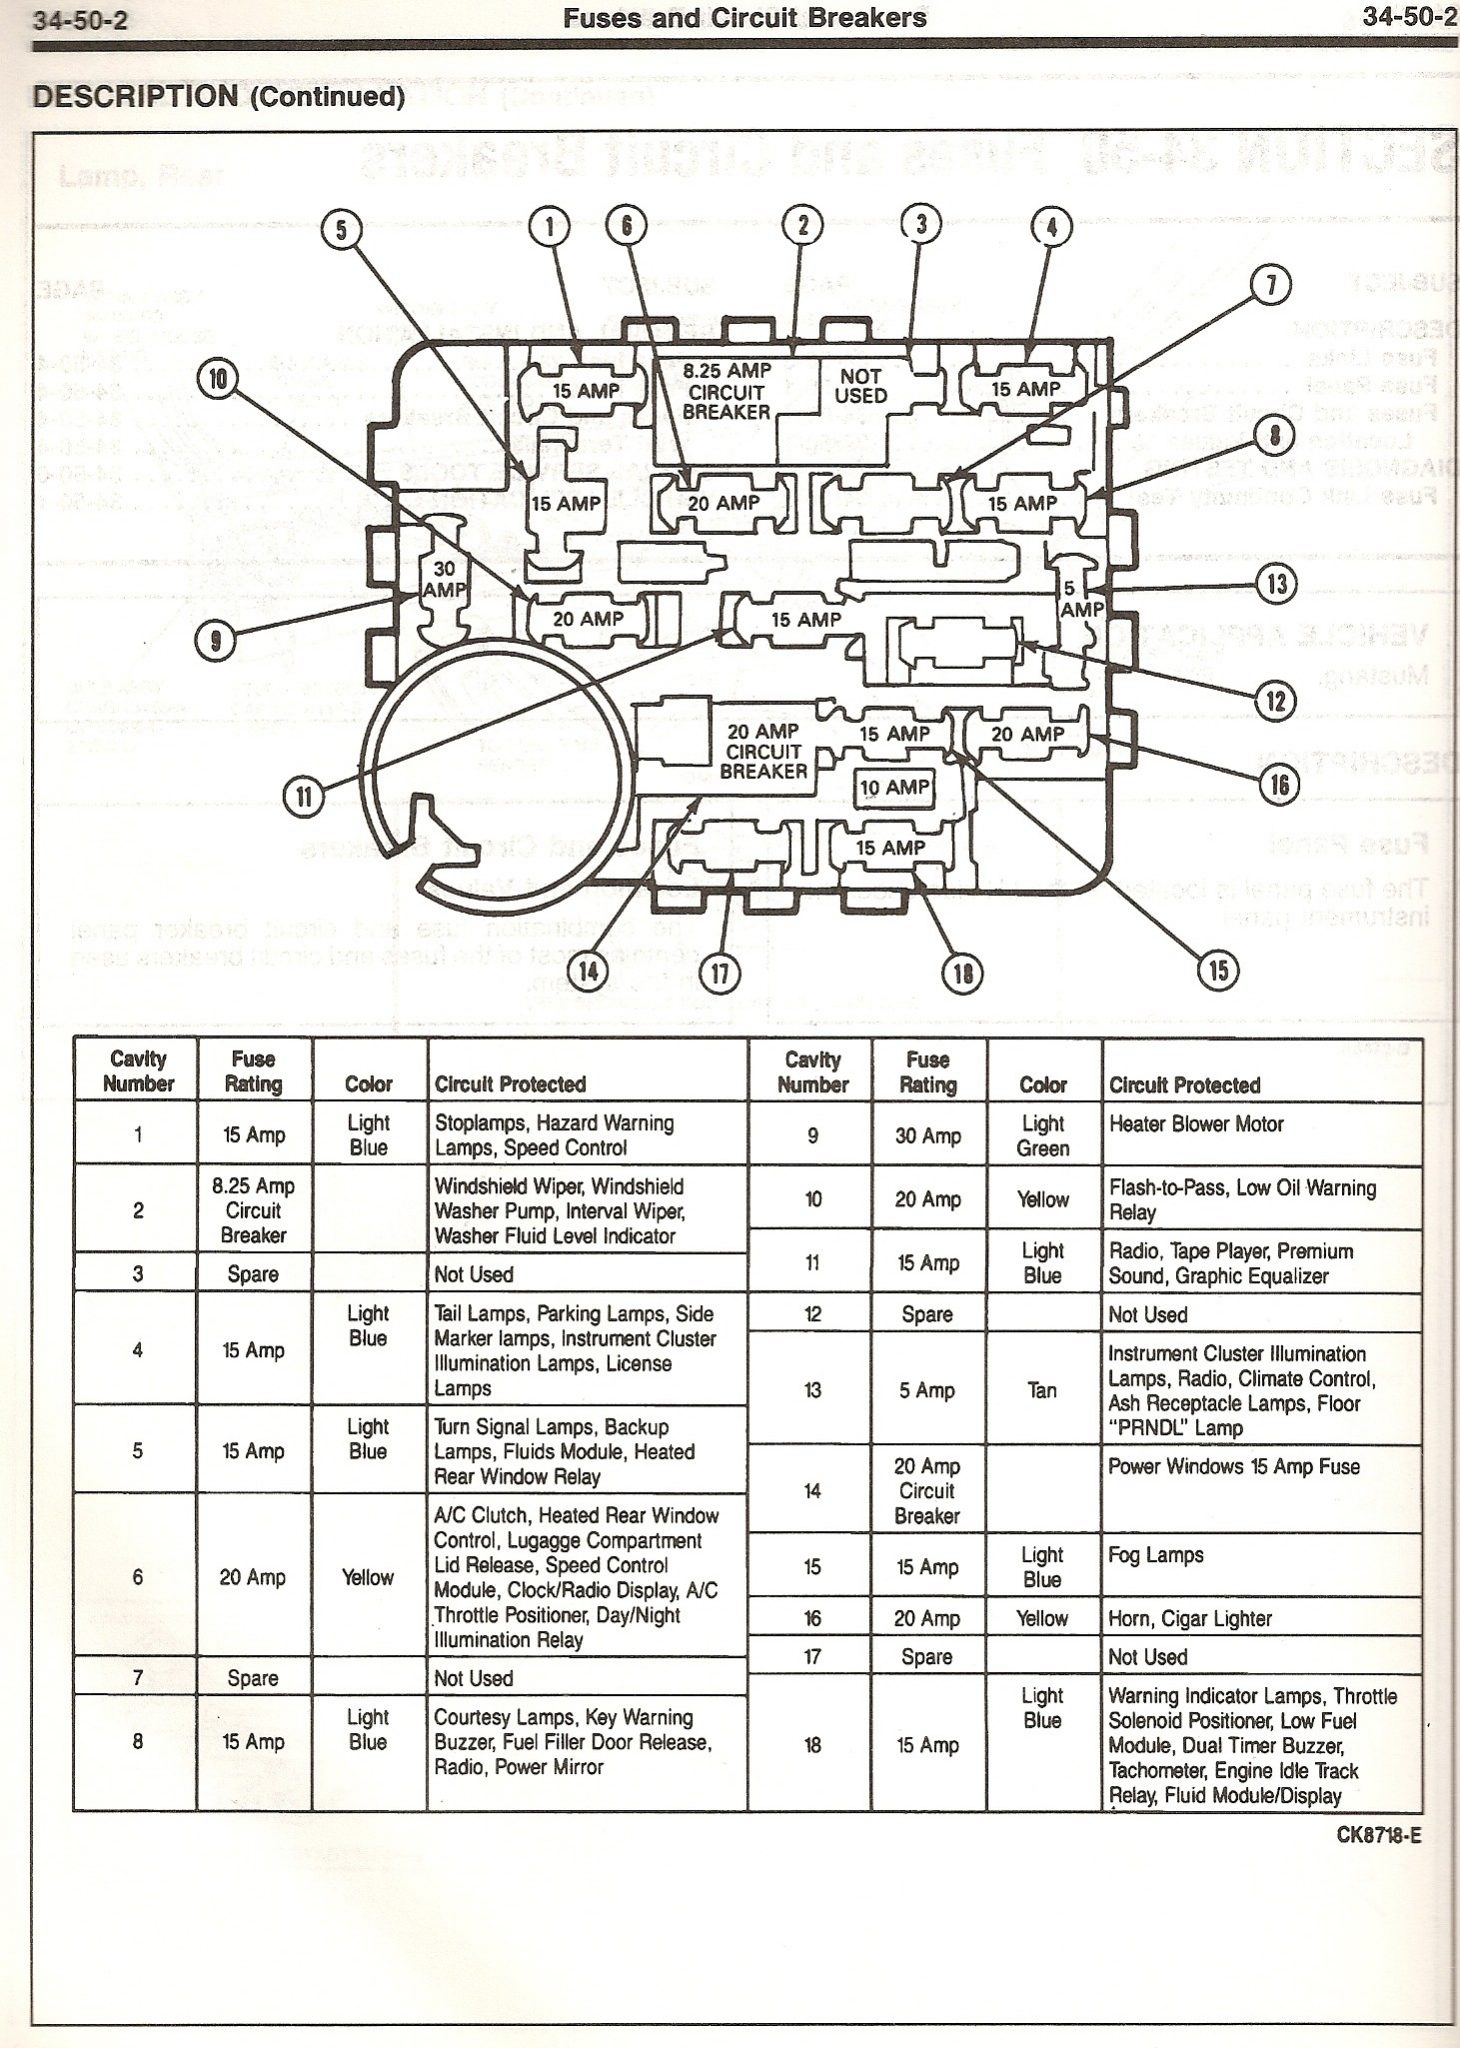 [DIAGRAM_38IU]  90 F150 Fuse Box Diagram - 1967 Camaro Headlight Motor Wiring Diagram for Wiring  Diagram Schematics | 1984 Ford Bronco Fuse Diagram |  | Wiring Diagram Schematics